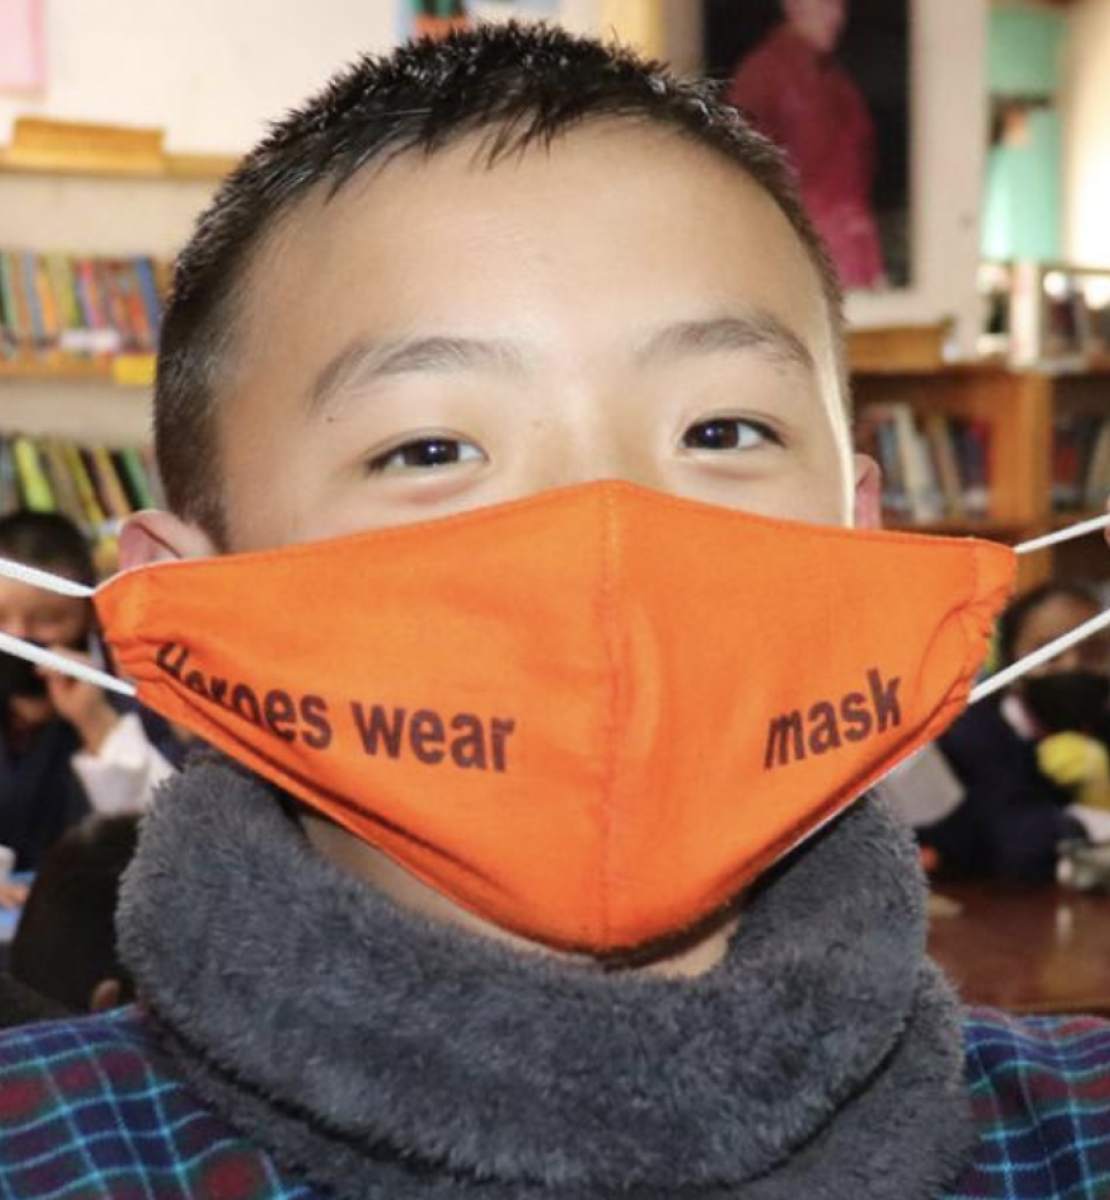 A young boy puts on his orange face mask while looking straight at the camera.